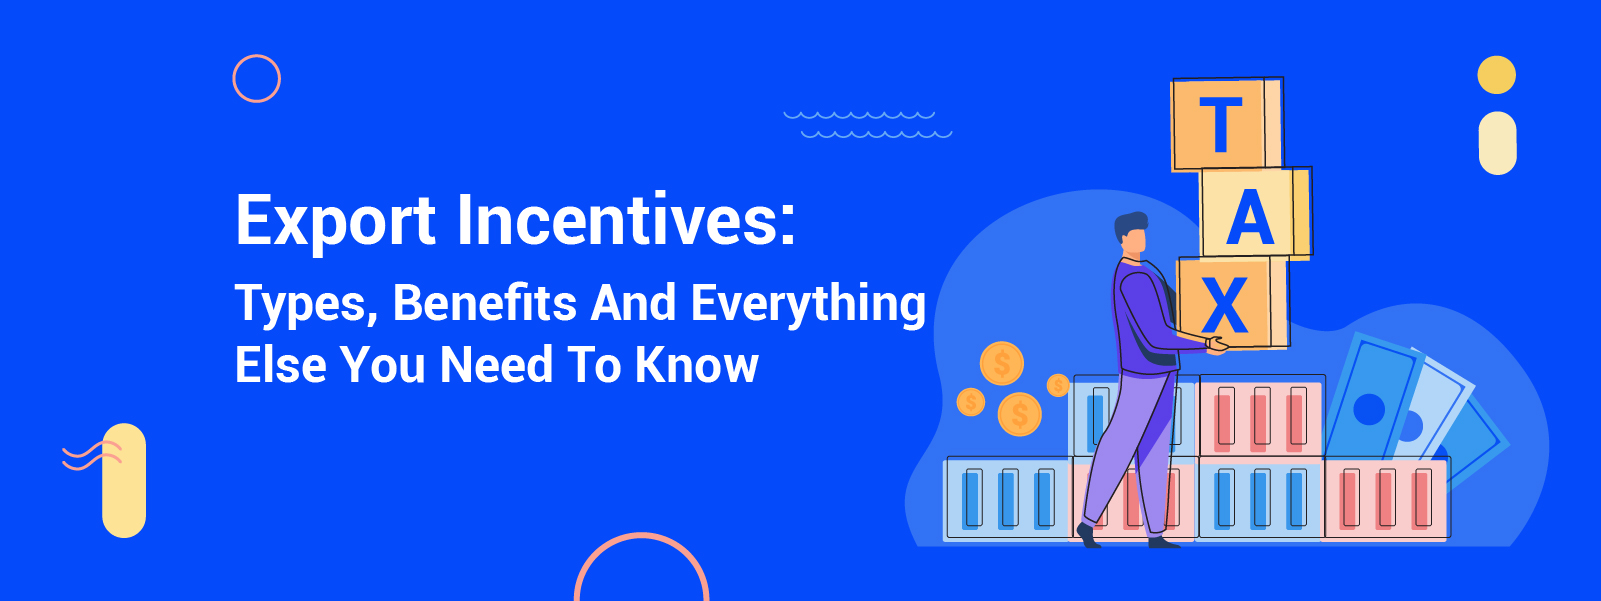 Export Incentives: Types, Benefits And Everything Else You Need To Know